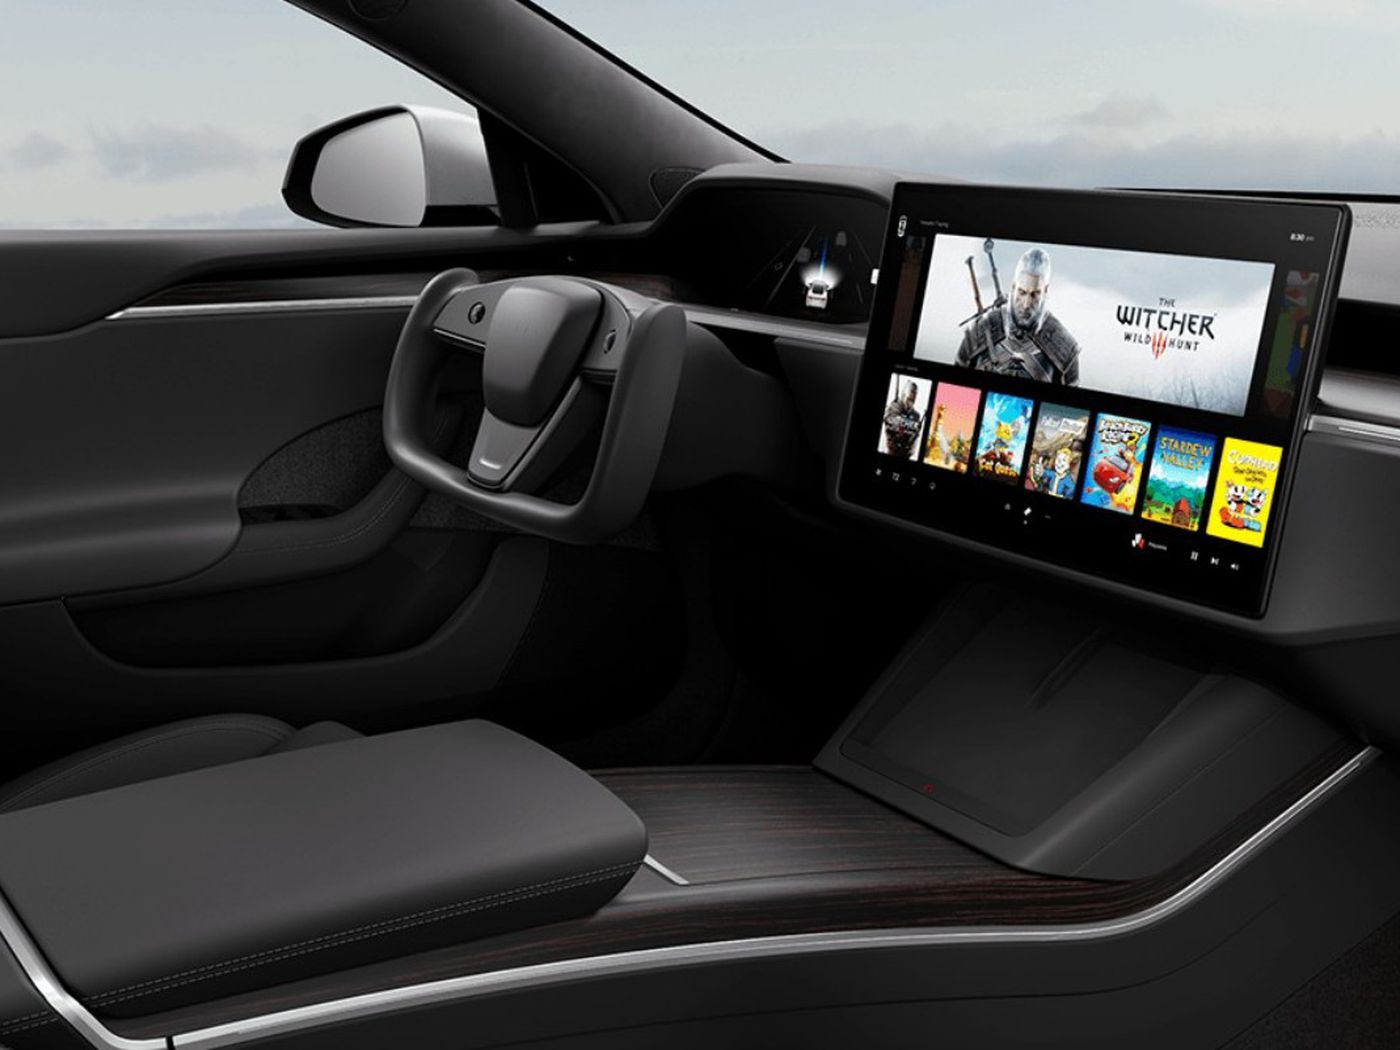 Tesla's new Model S will apparently play Witcher 3 on a built-in 10  teraflop gaming rig - The Verge